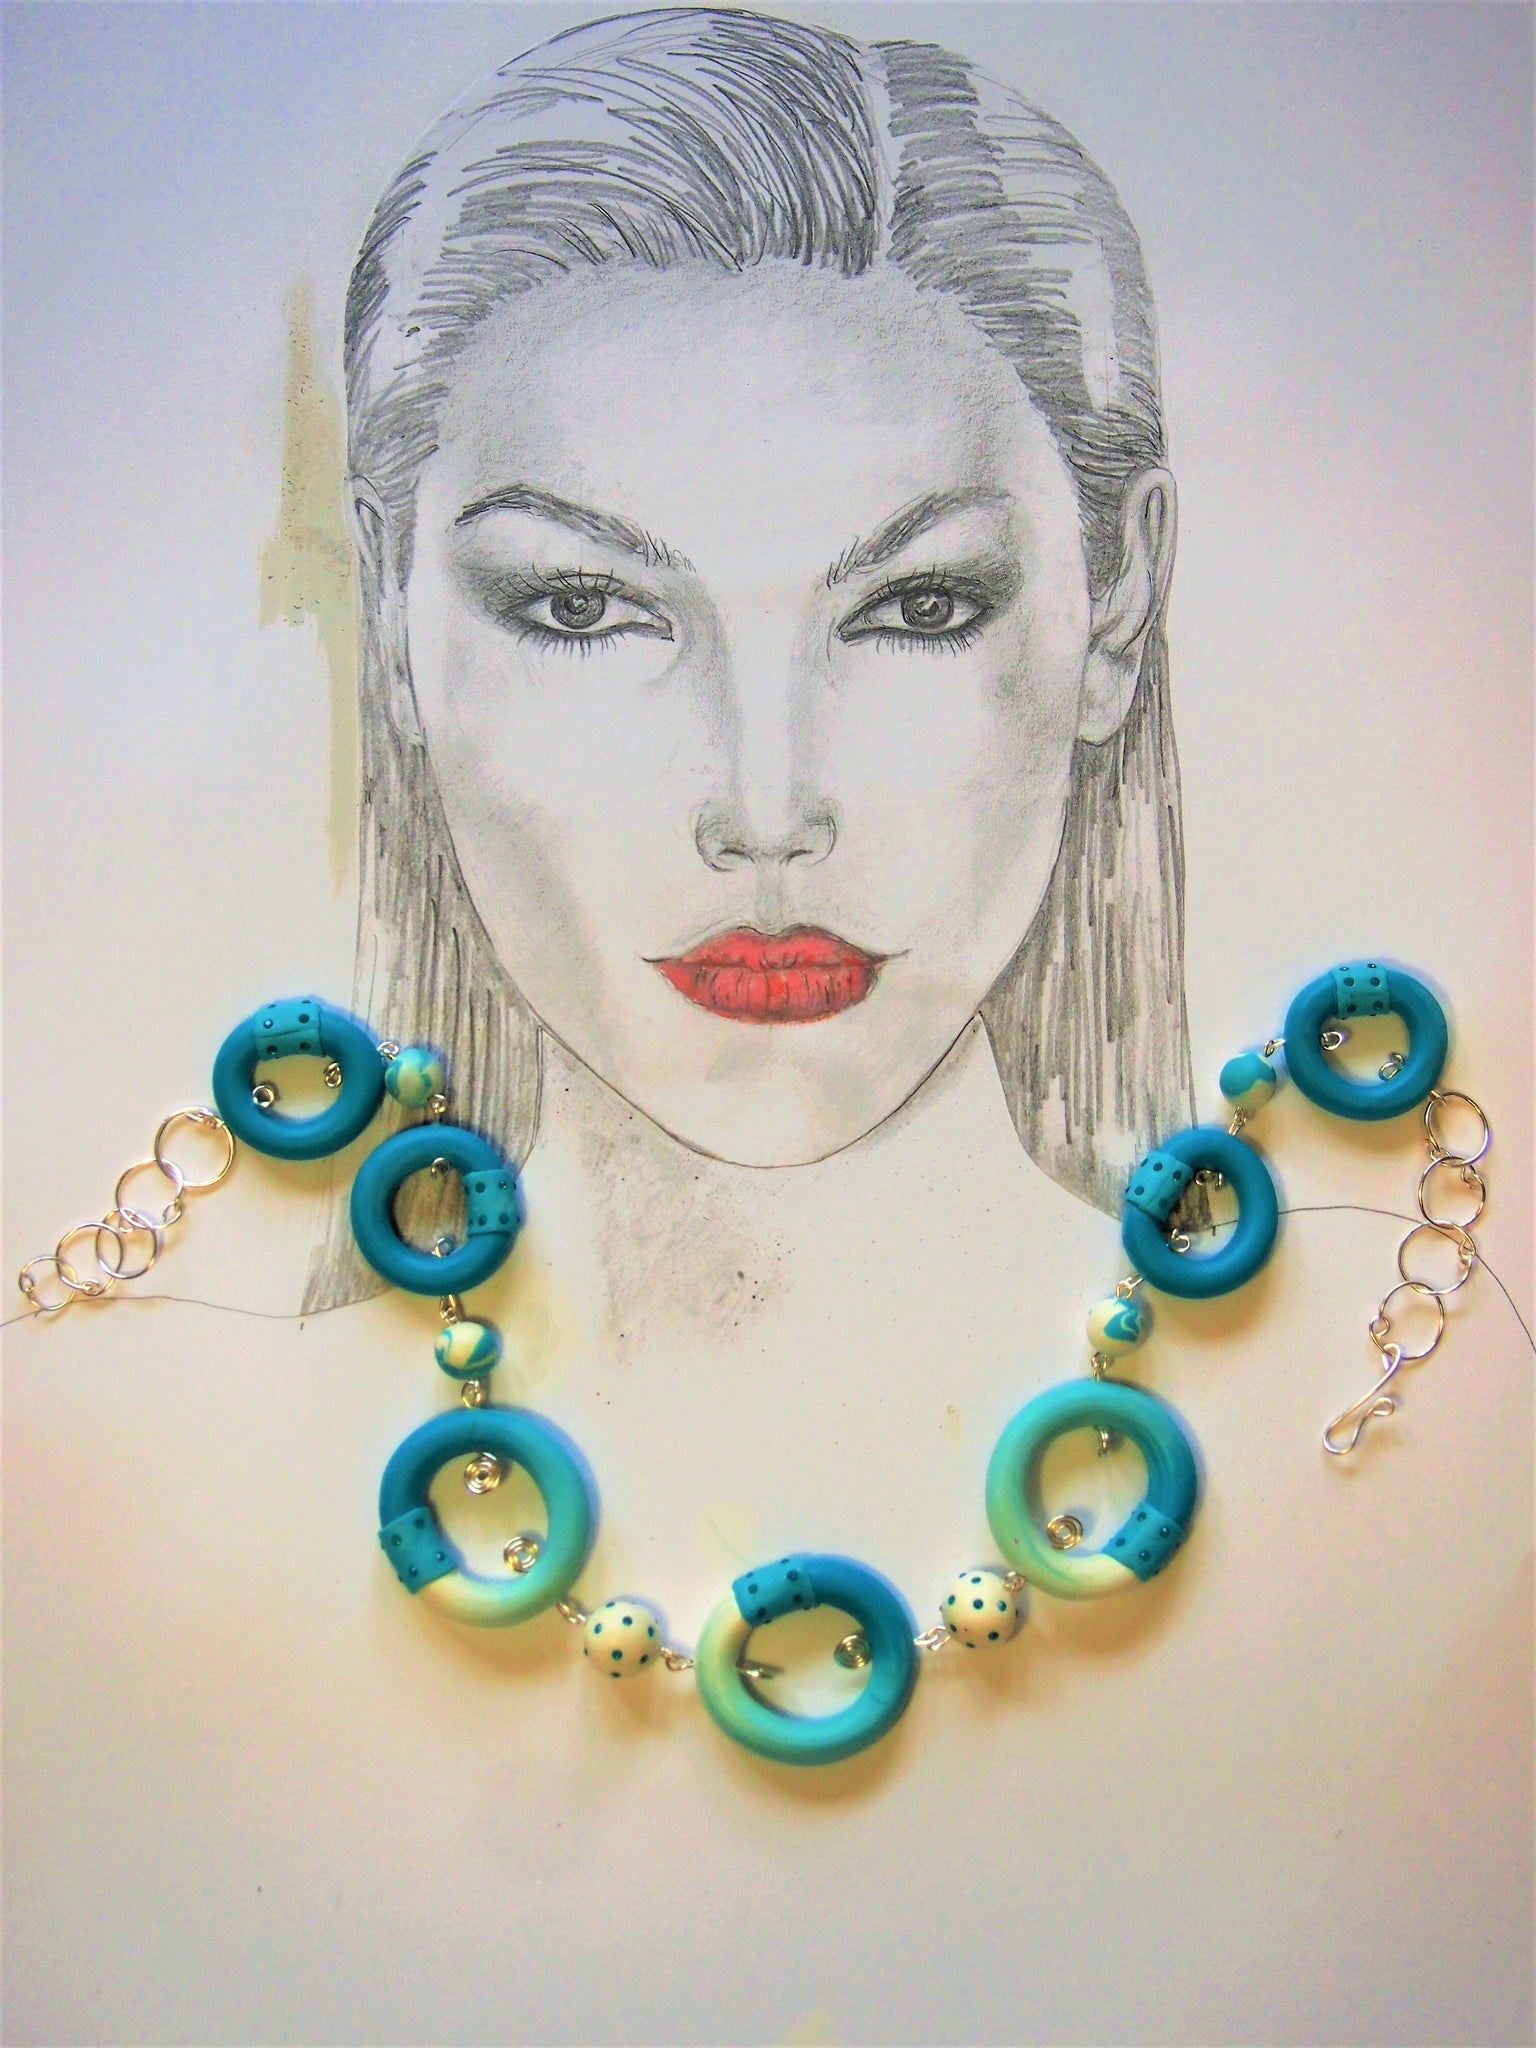 Turquoise Ring upon Ring necklace by Ellar